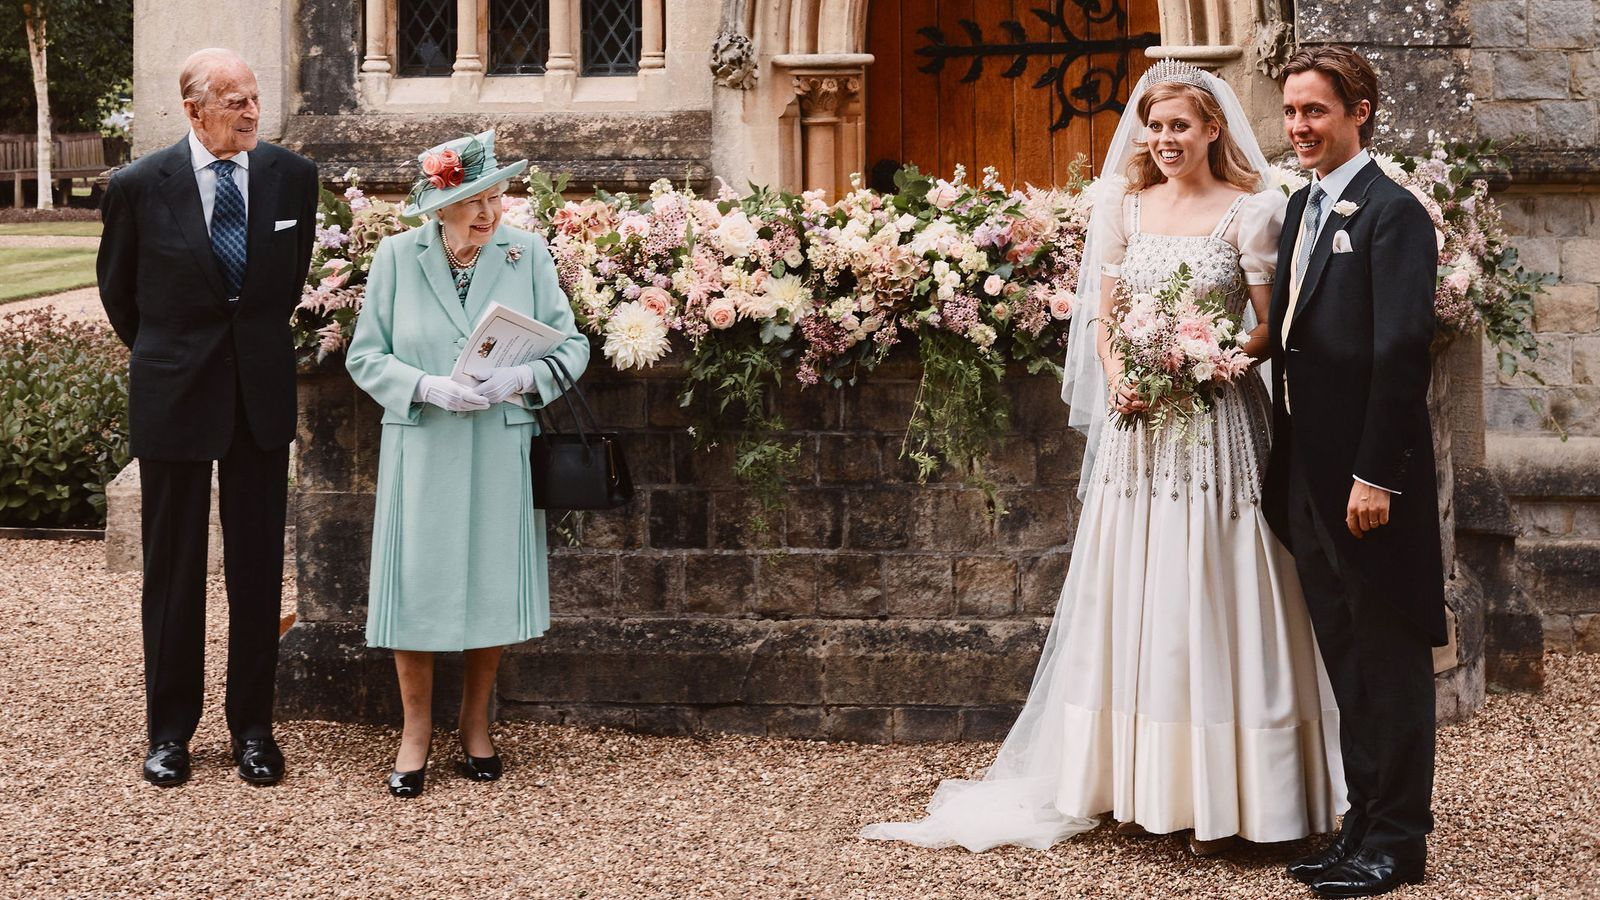 Princess Beatrice Wedding First Photos From Ceremony Show Royal In Queen S Dress And Tiara Princess Beatrice Wedding Royal Brides Princess Beatrice [ 900 x 1600 Pixel ]